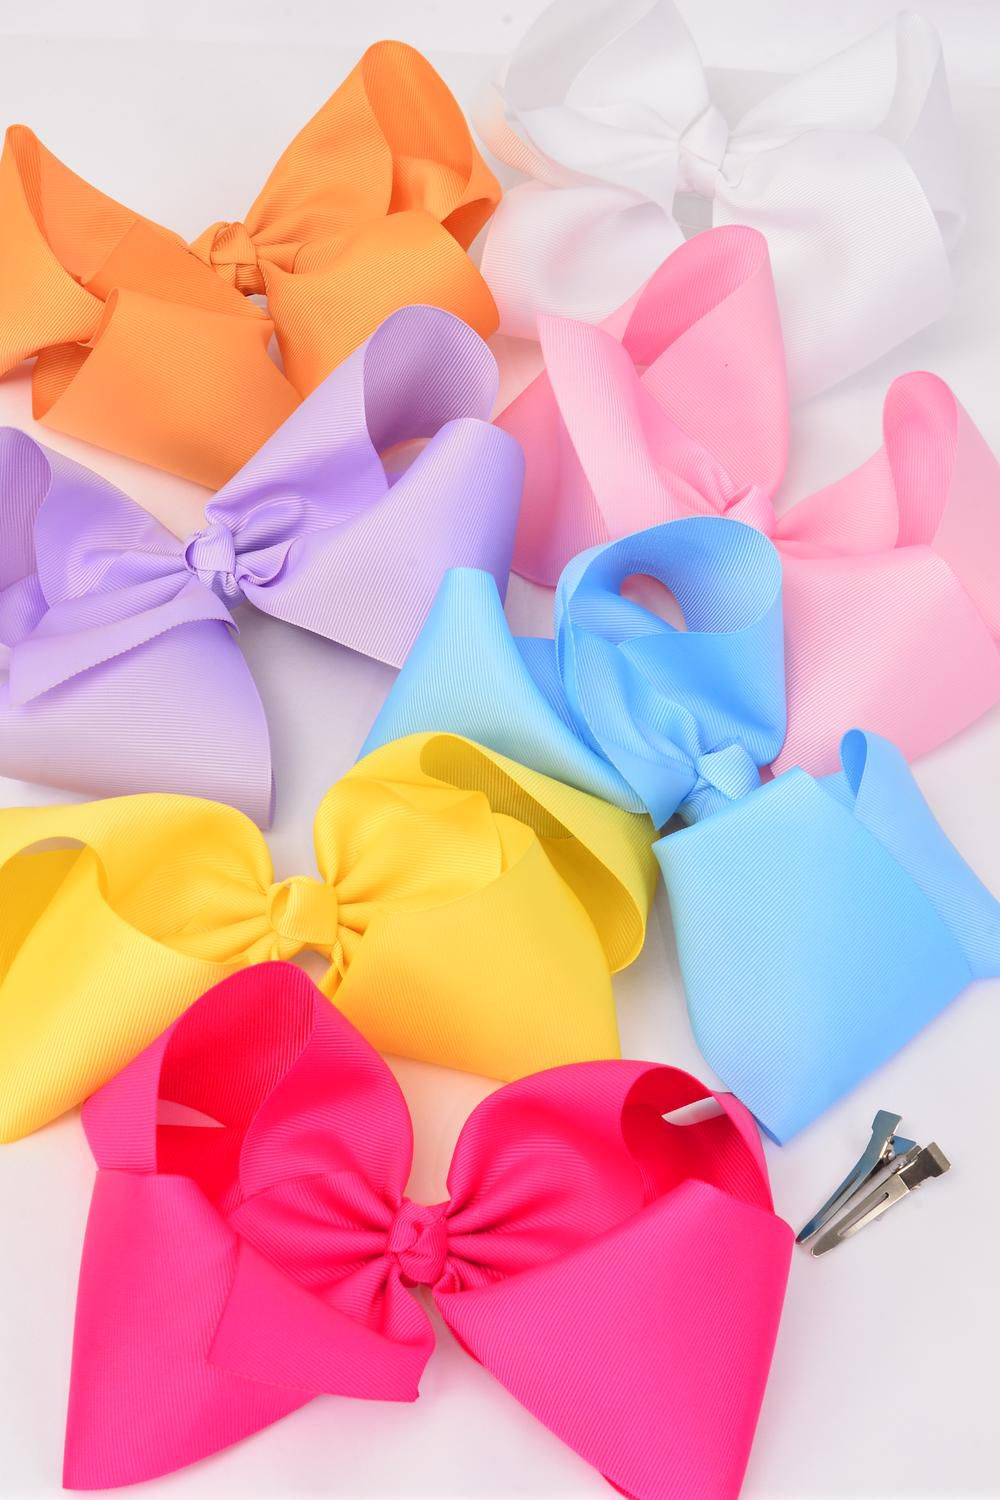 "Hair Bow Cheer Type Bow Pastel Alligator Clip Grosgrain Bow-tie/DZ **Pastel Mix** Size-8""x 7"" Wide,Alligator Clip,2 Hot Pink,2 Lavender,2 Yellow,2 White,2 Blue,1 Peach,1 Baby Pink,7 Color Asst,W Clear Strip & UPC Code"